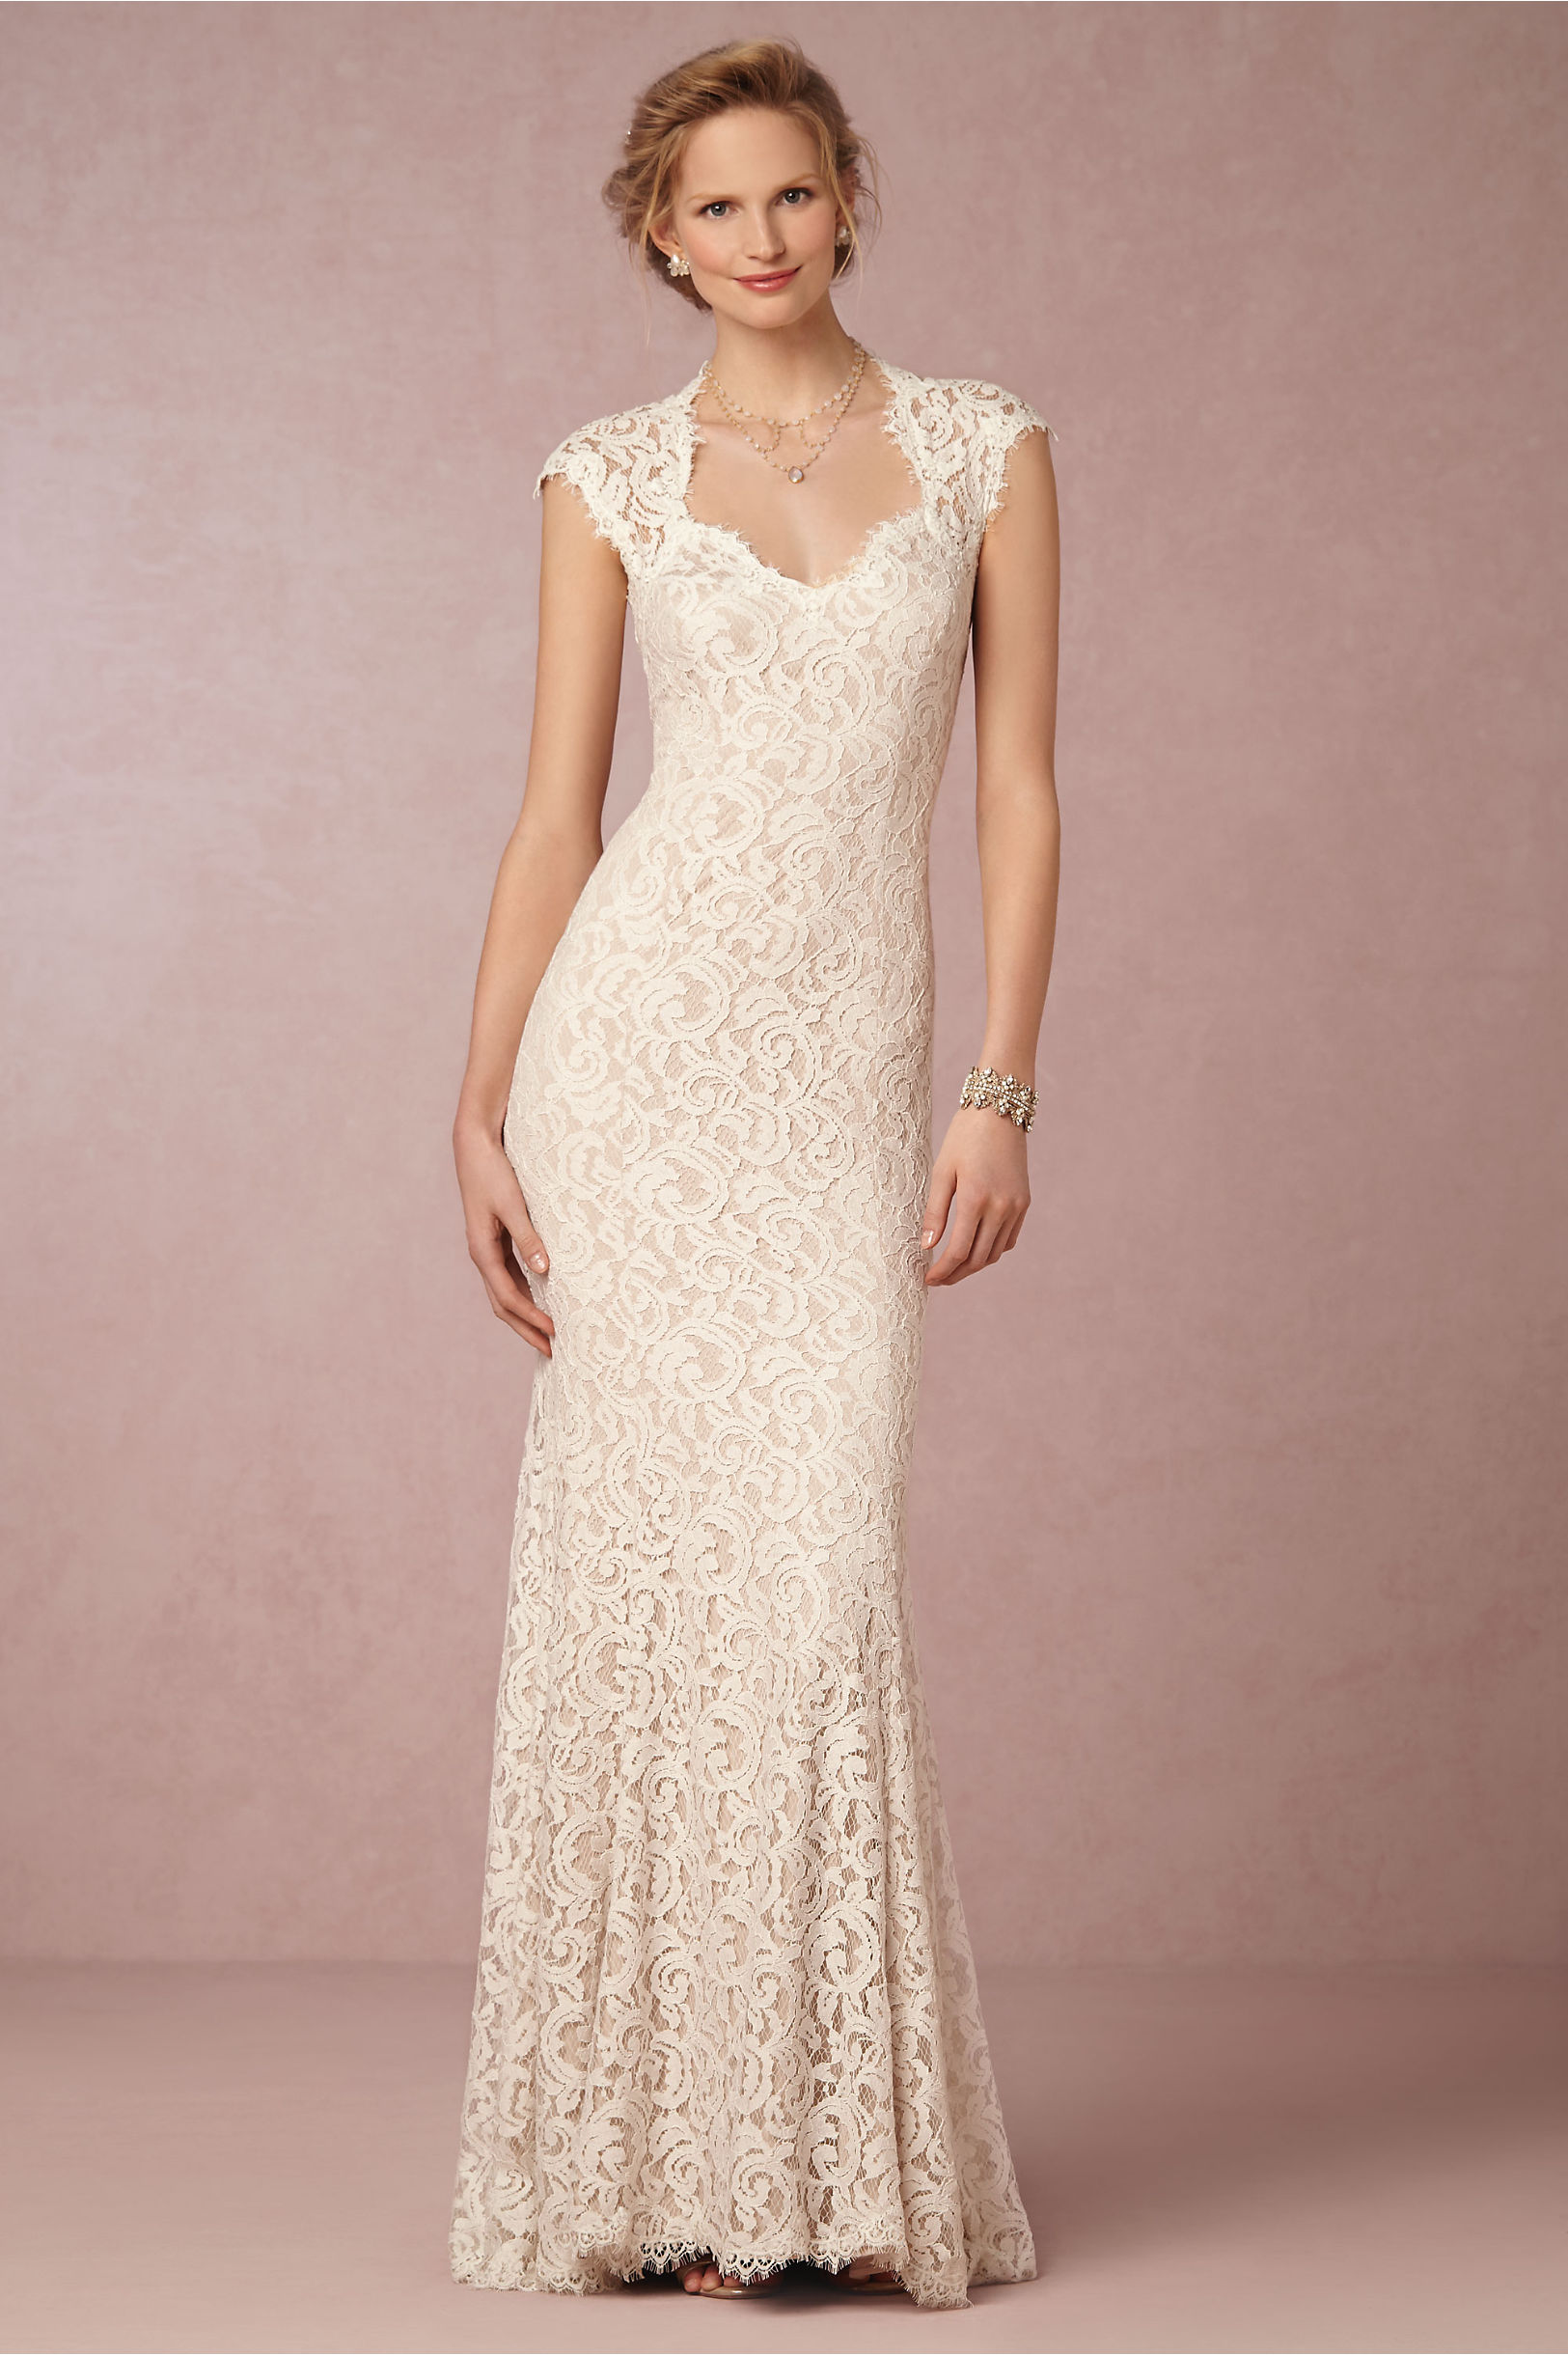 9ee79372ec0 Designer Wedding Dresses From Fashion Month Tadashi Shoji. ivorynatural  marivana lace gown bhldn